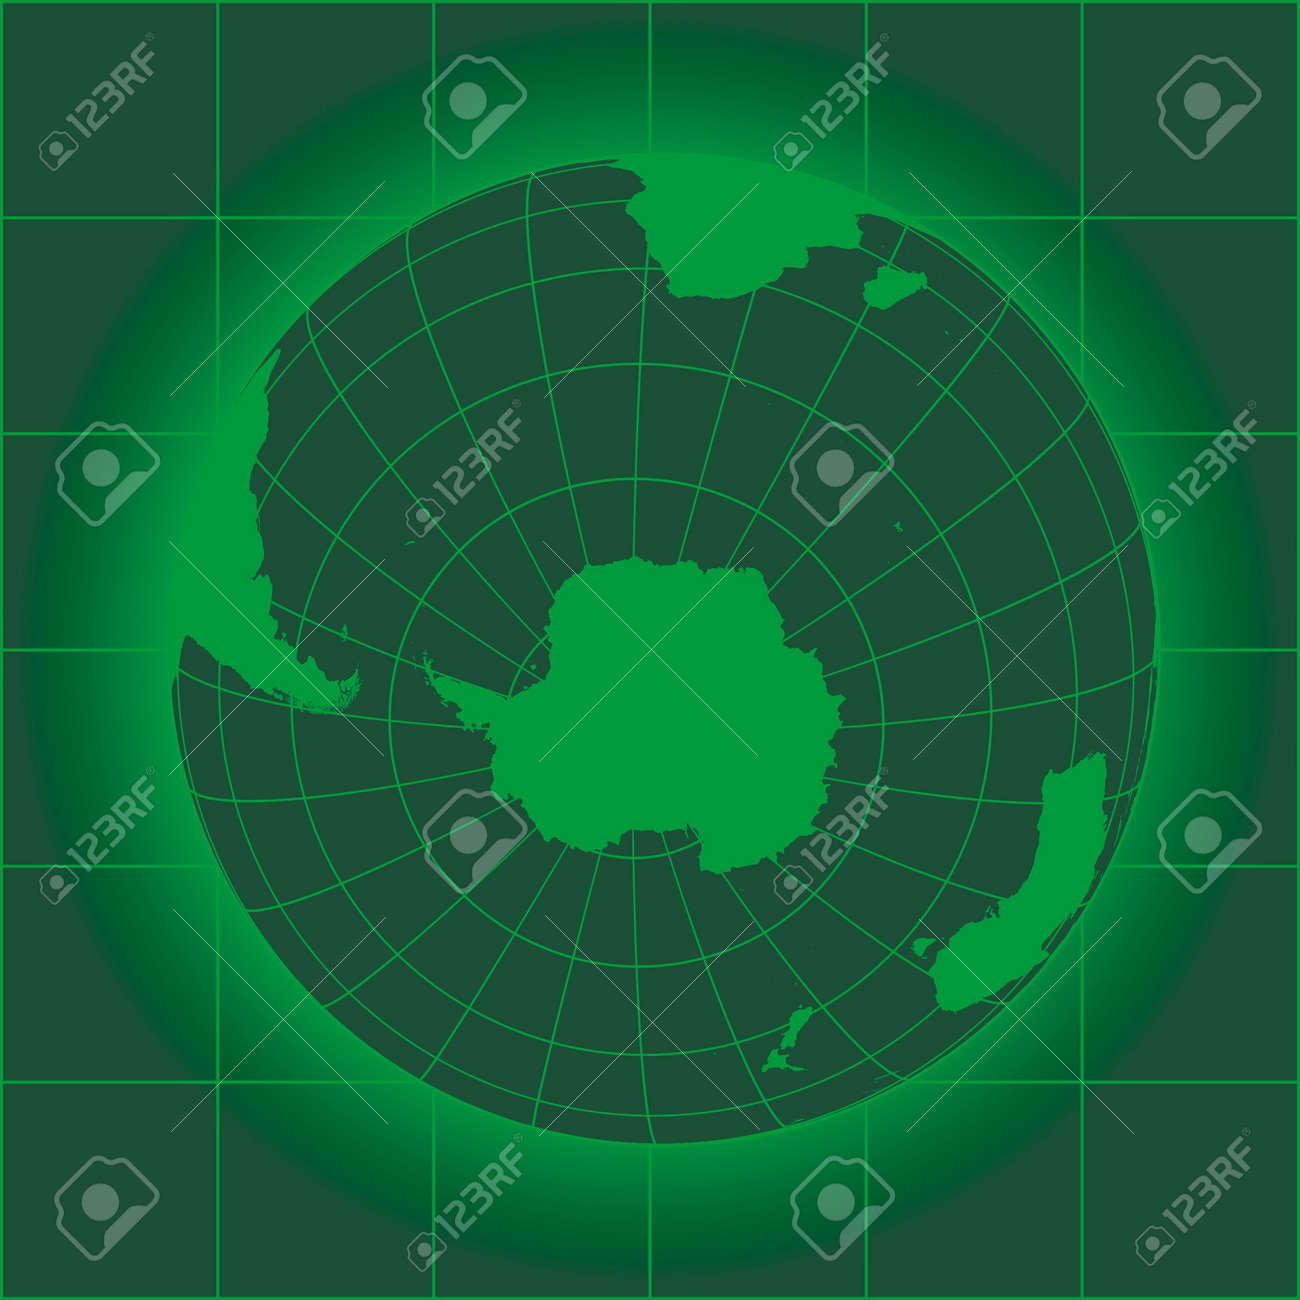 Green antarctica and south pole map antarctica australia america green antarctica and south pole map antarctica australia america africa earth gumiabroncs Image collections